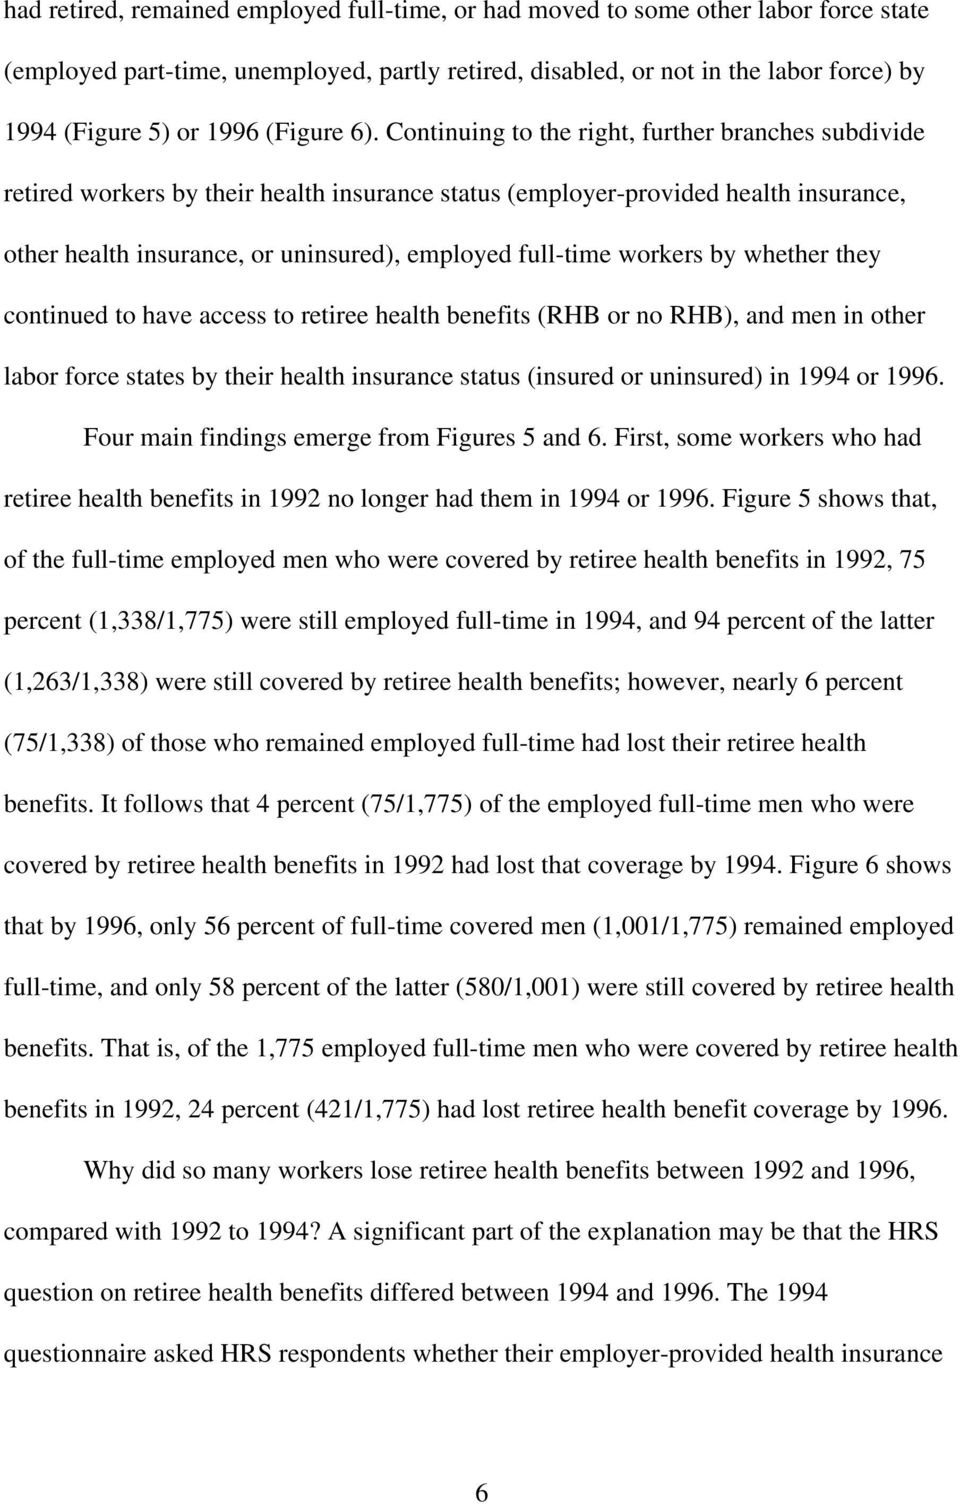 Continuing to the right, further branches subdivide retired workers by their health insurance status (employer-provided health insurance, other health insurance, or uninsured), employed full-time